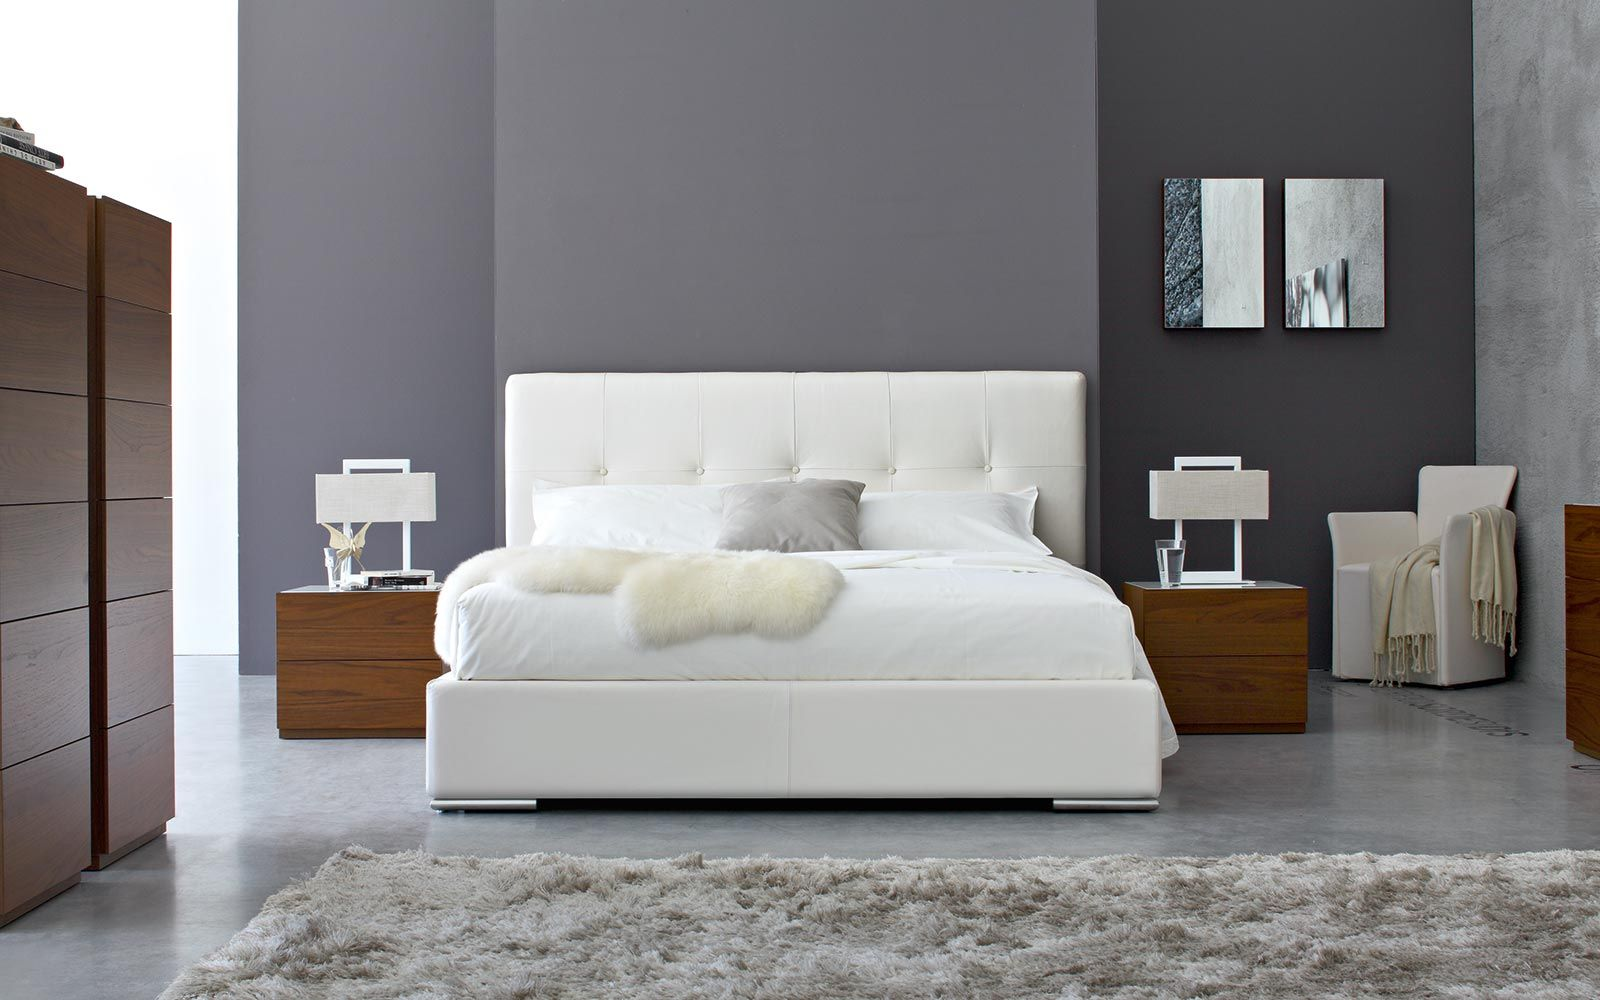 swami upholstered bed calligaris concepto modern living showroom